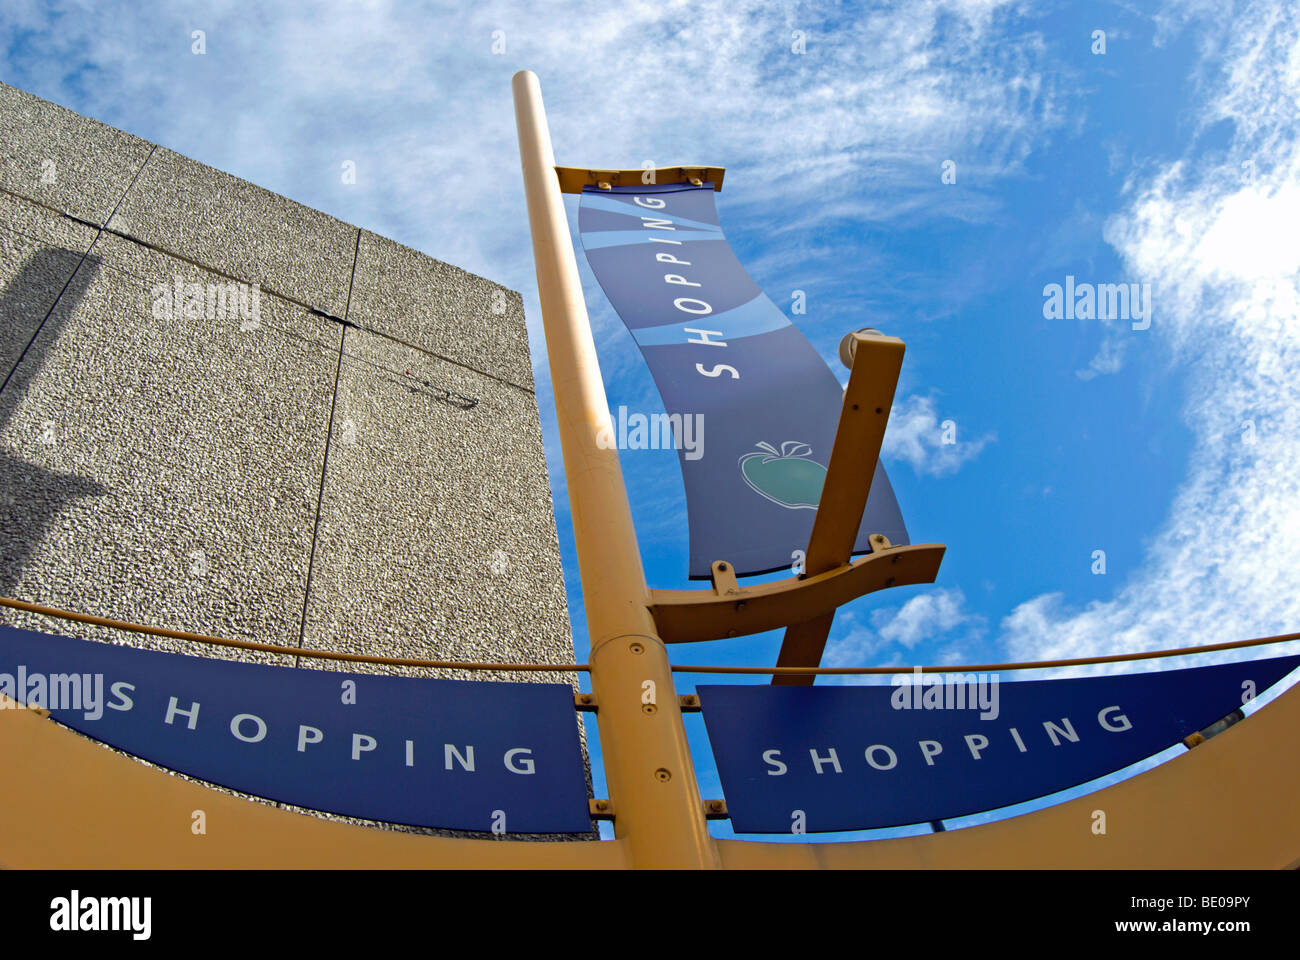 fixed banner signs for shopping, outside the eden walk shopping precinct in kingston upon thames, surrey, england - Stock Image